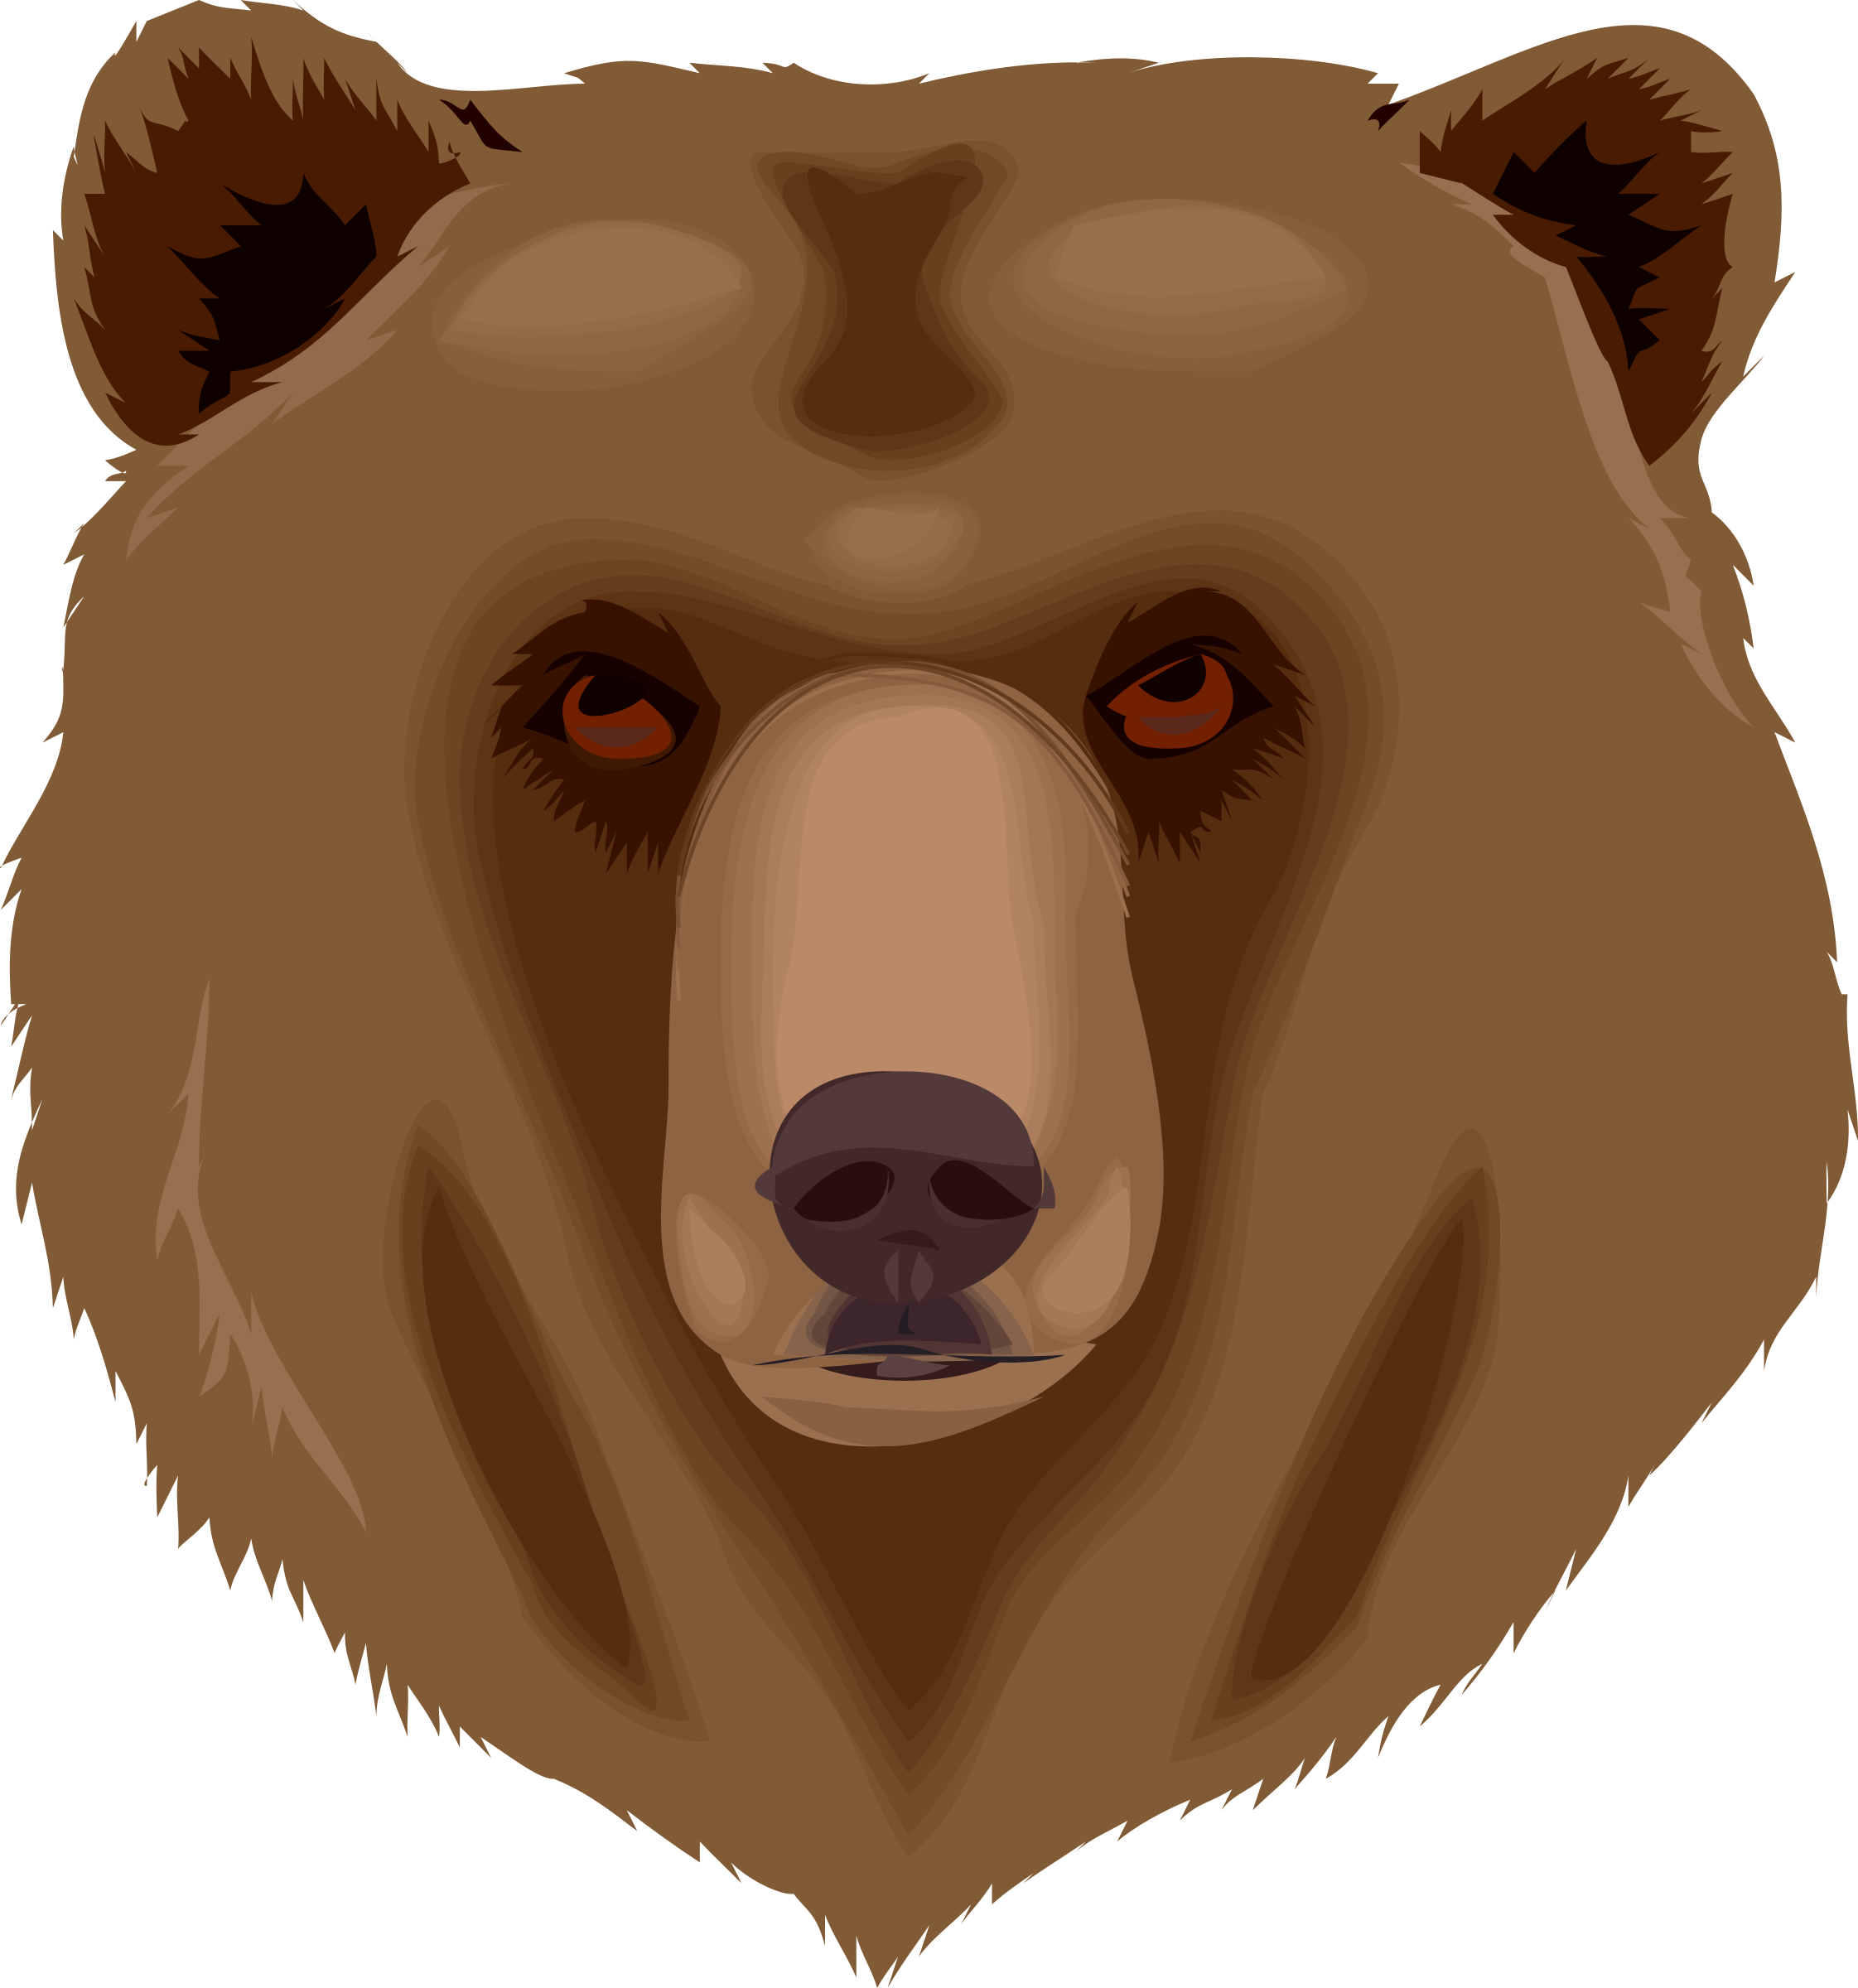 Big clipart grizzly bear. Architetto orso icons png